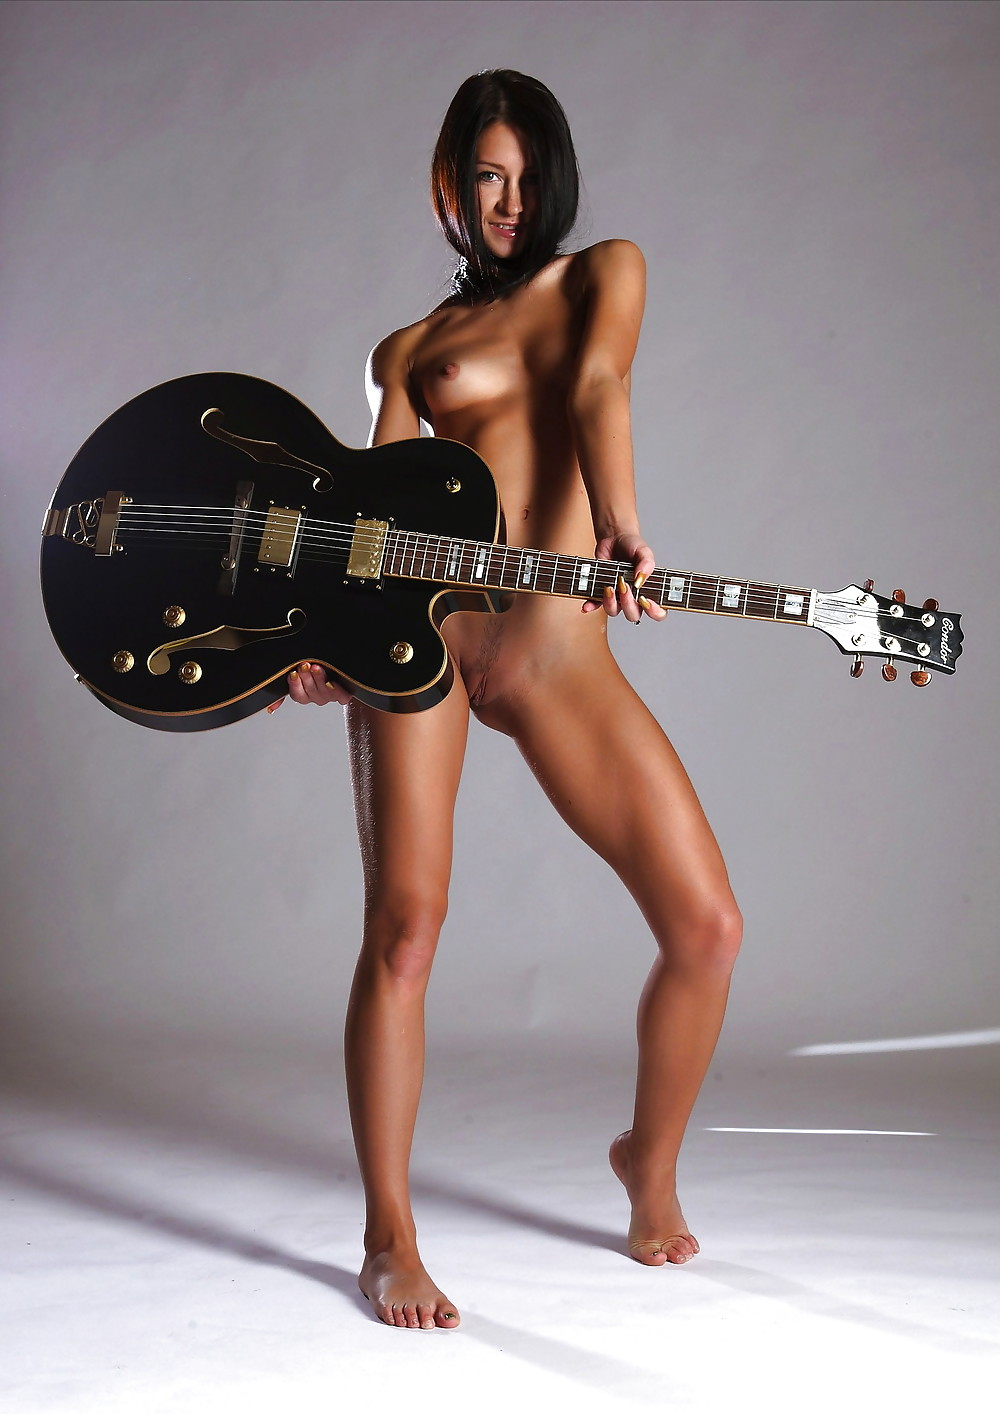 Nude girl playing guitar, candice hillebrand fucking